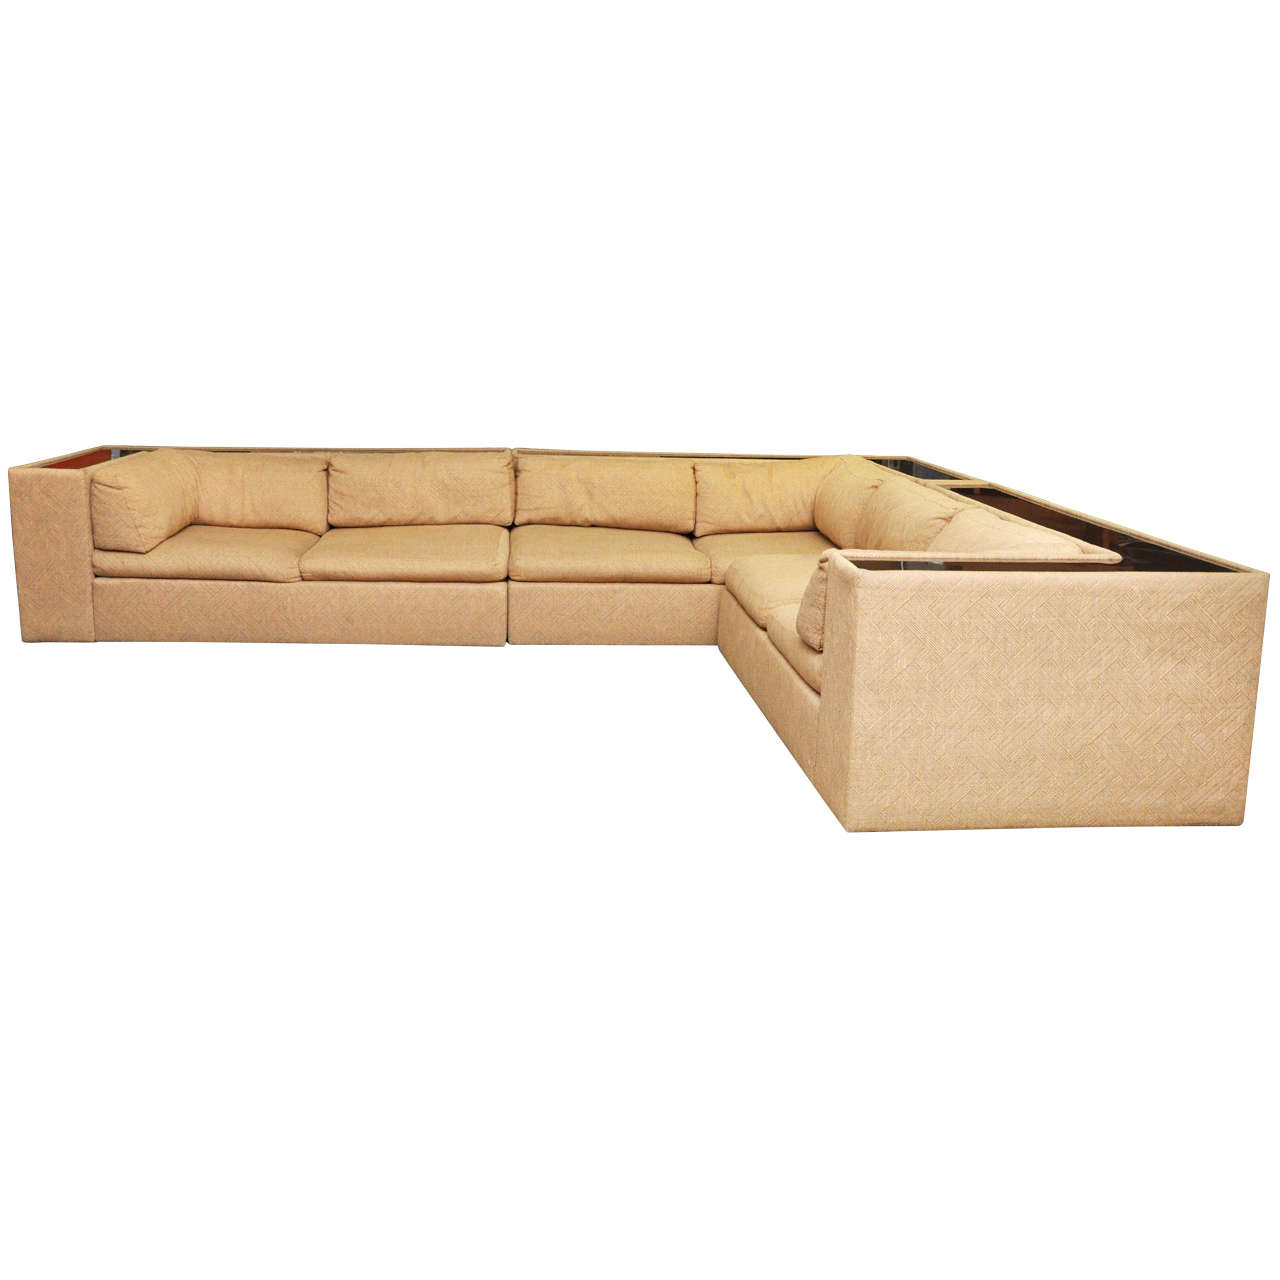 Four-Piece Milo Baughman Sectional Sofa in Original Upholstery For Sale